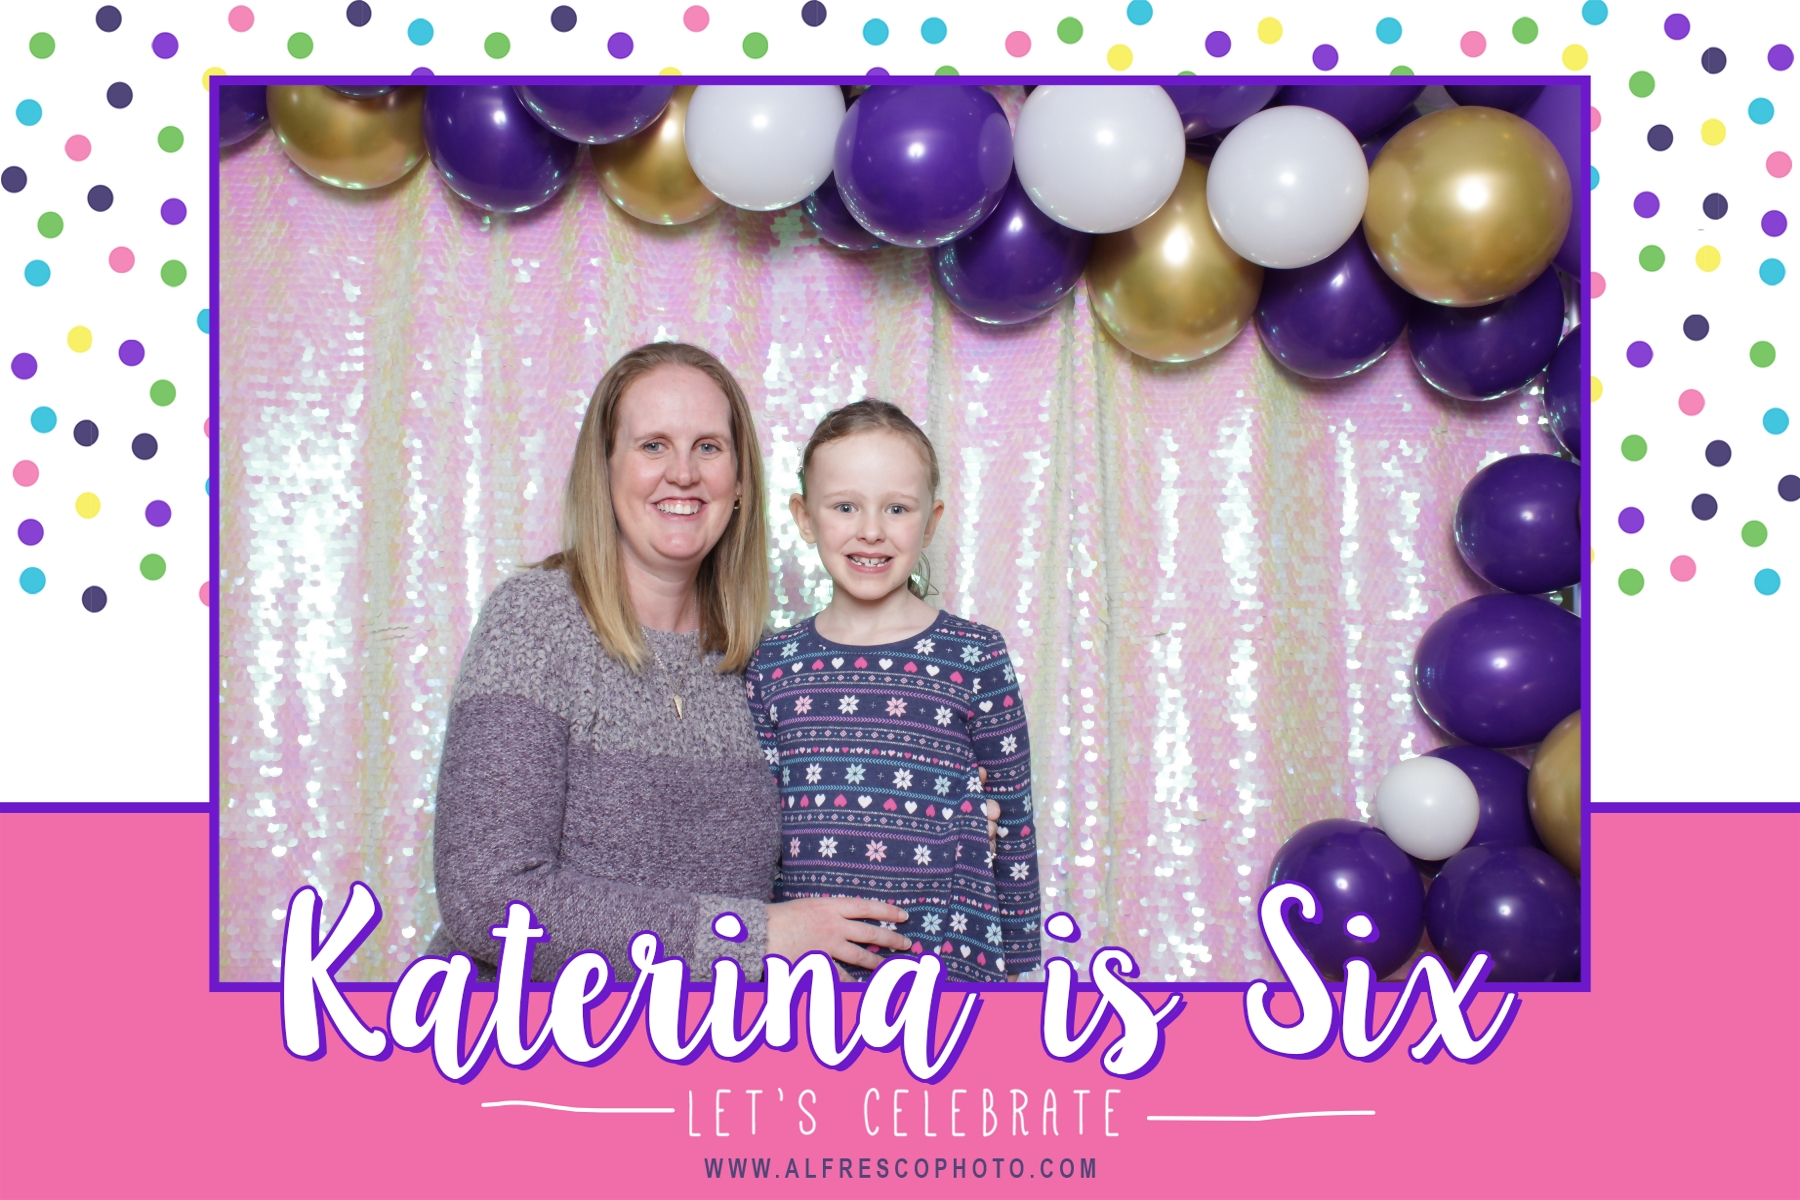 Katarina's 6th Birthday | View more photos from the event at events.alfrescophoto.com/u/AlfrescoPhoto/Katarinas-6th-Birthday